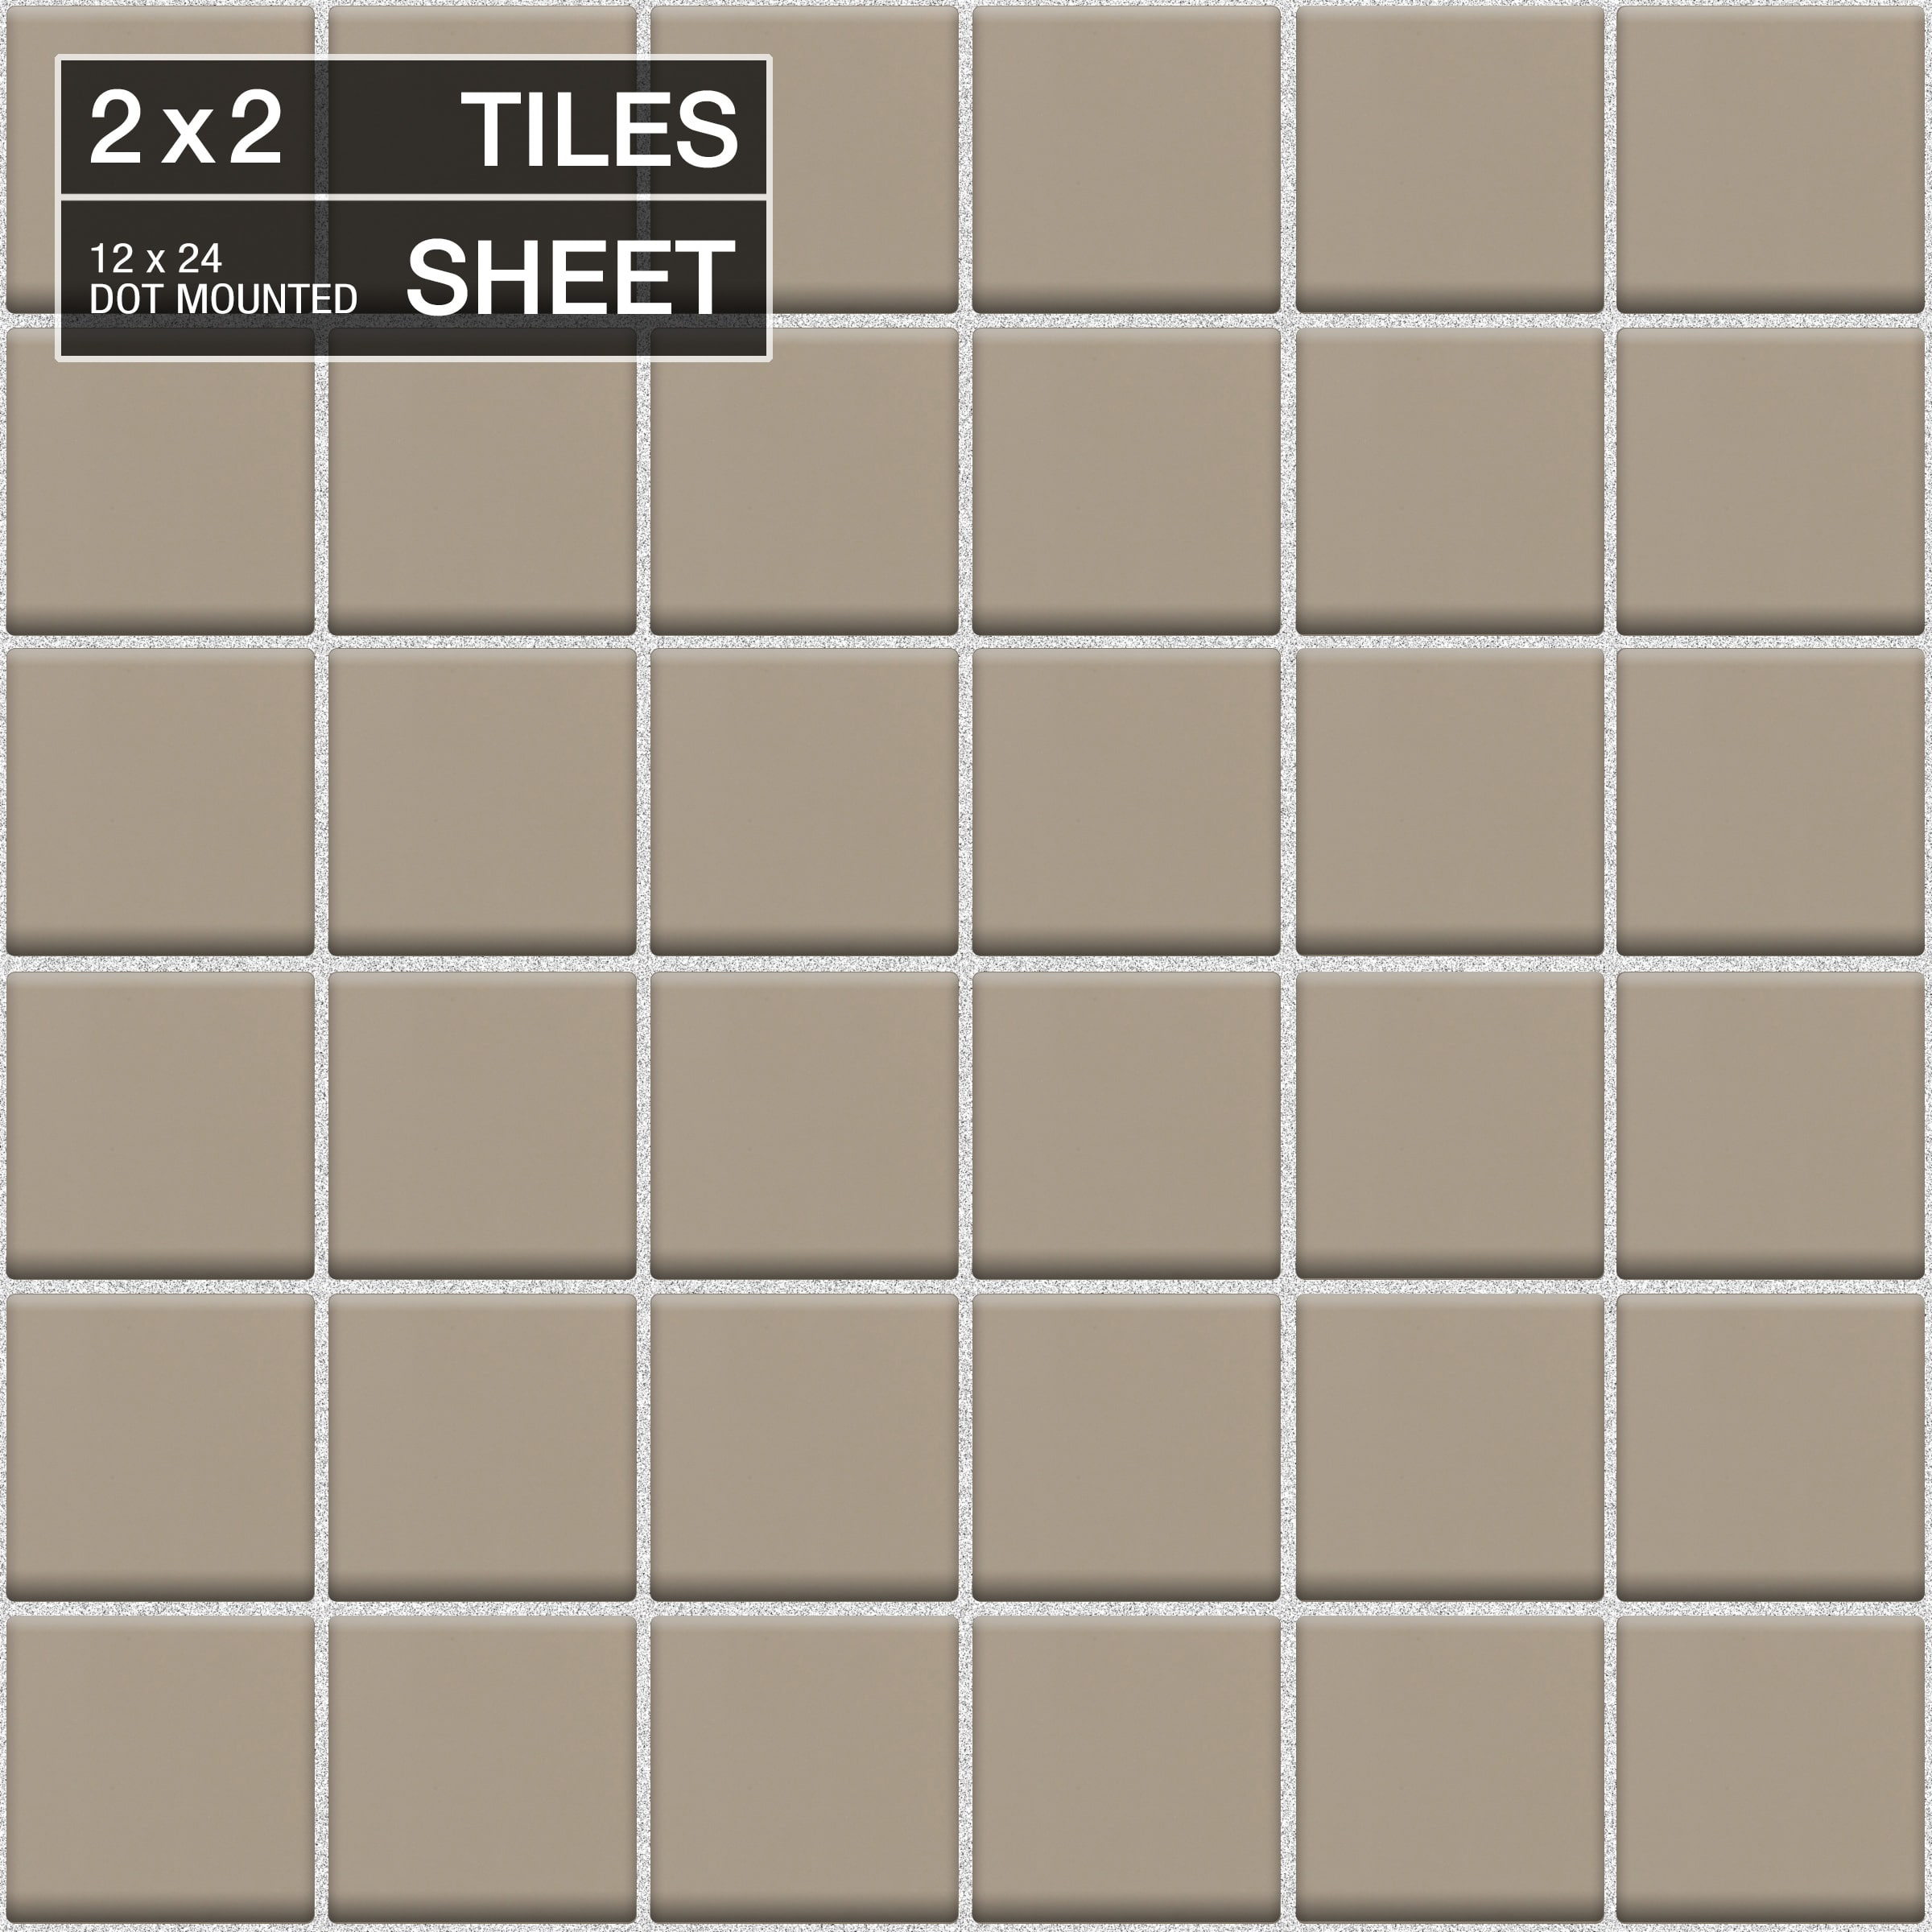 Discontinued ceramic tile finder gallery tile flooring design ideas discontinued daltile ceramic tile images tile flooring design ideas discontinued daltile ceramic tile gallery tile flooring dailygadgetfo Choice Image